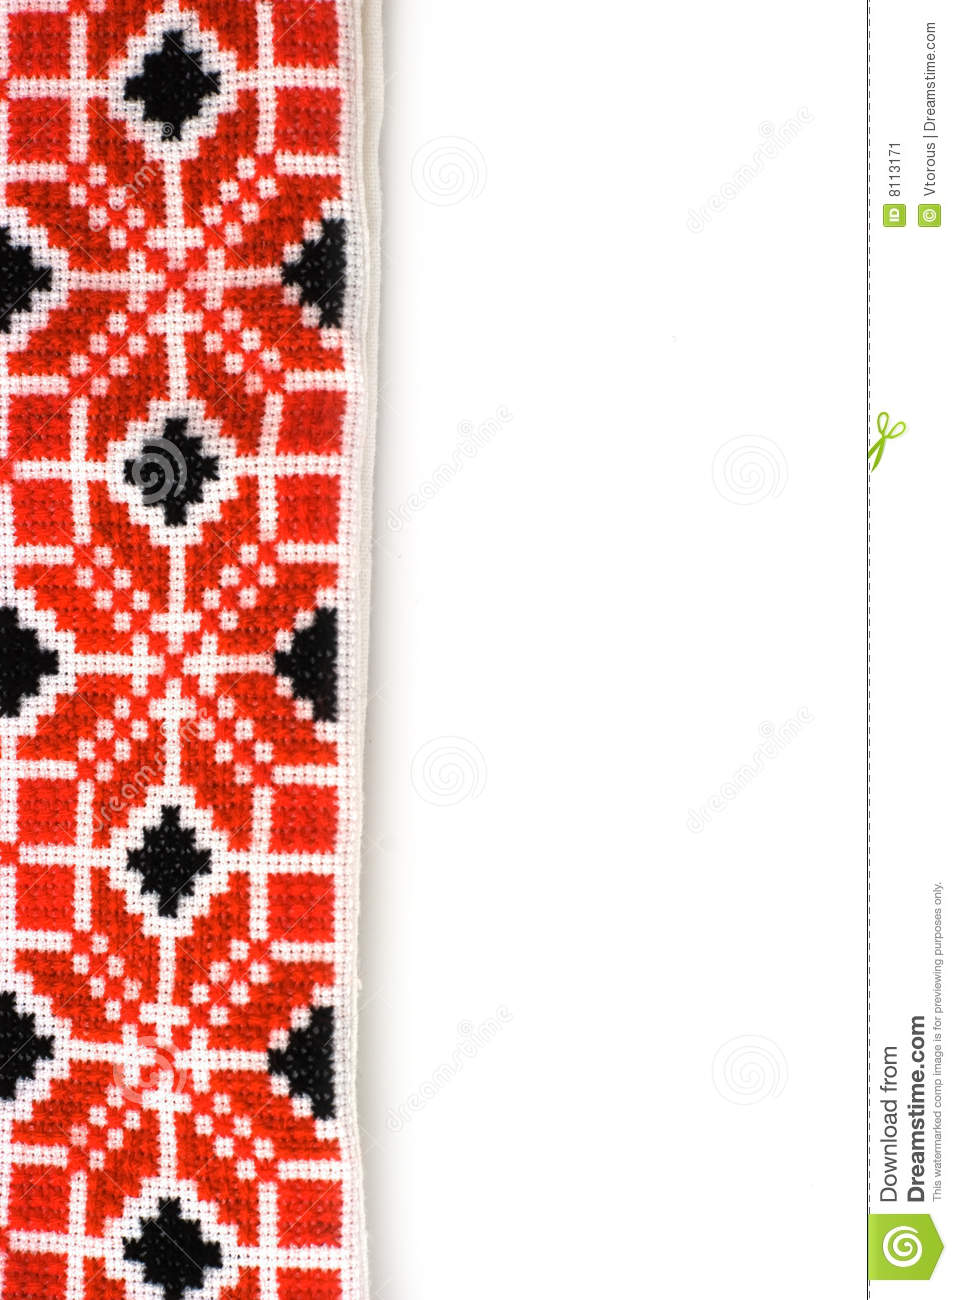 ukrainian embroidery stock image